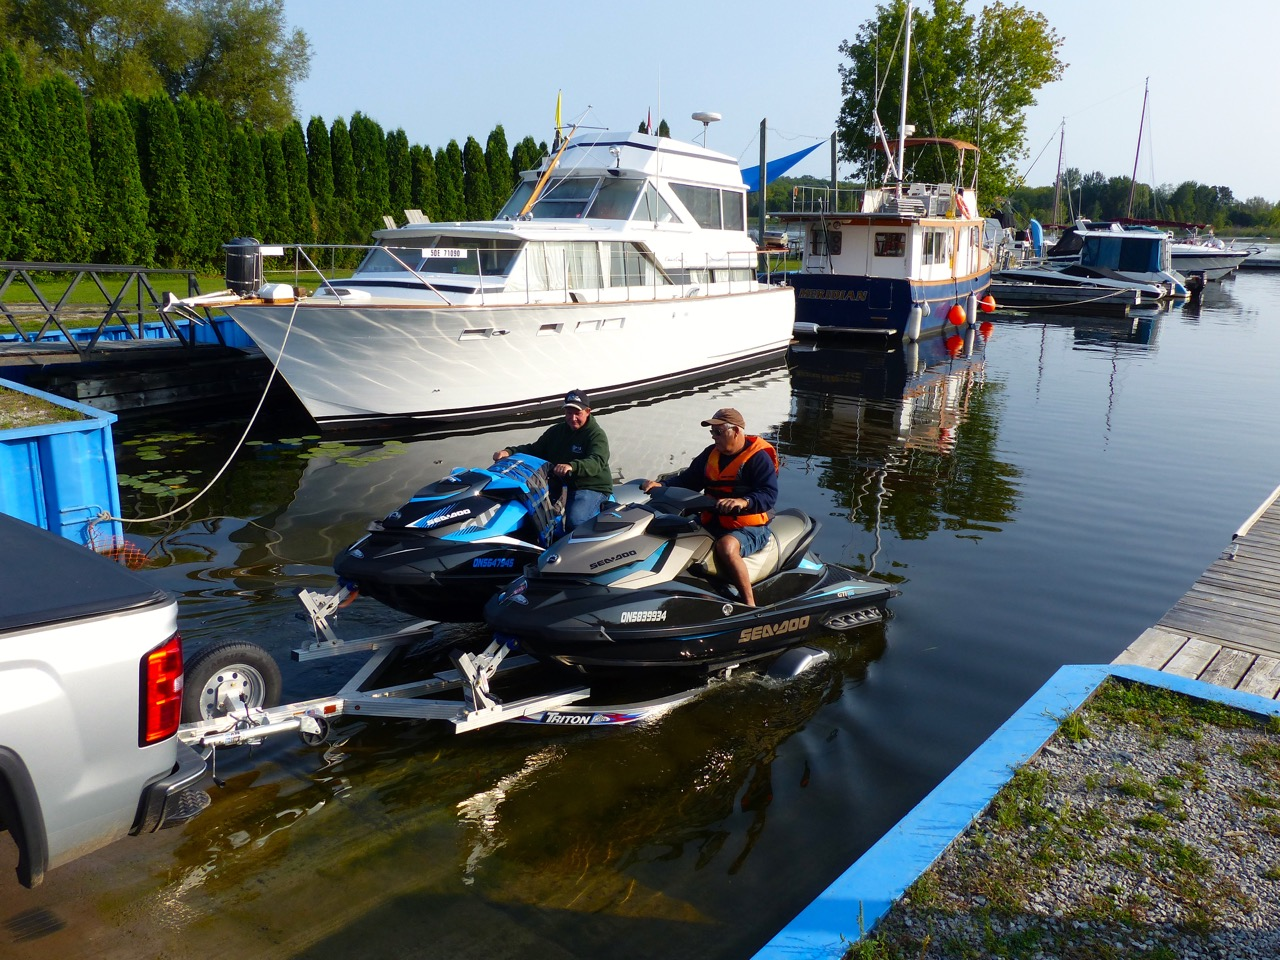 Loading and unloading at boat launches is among PWC beginners tips.